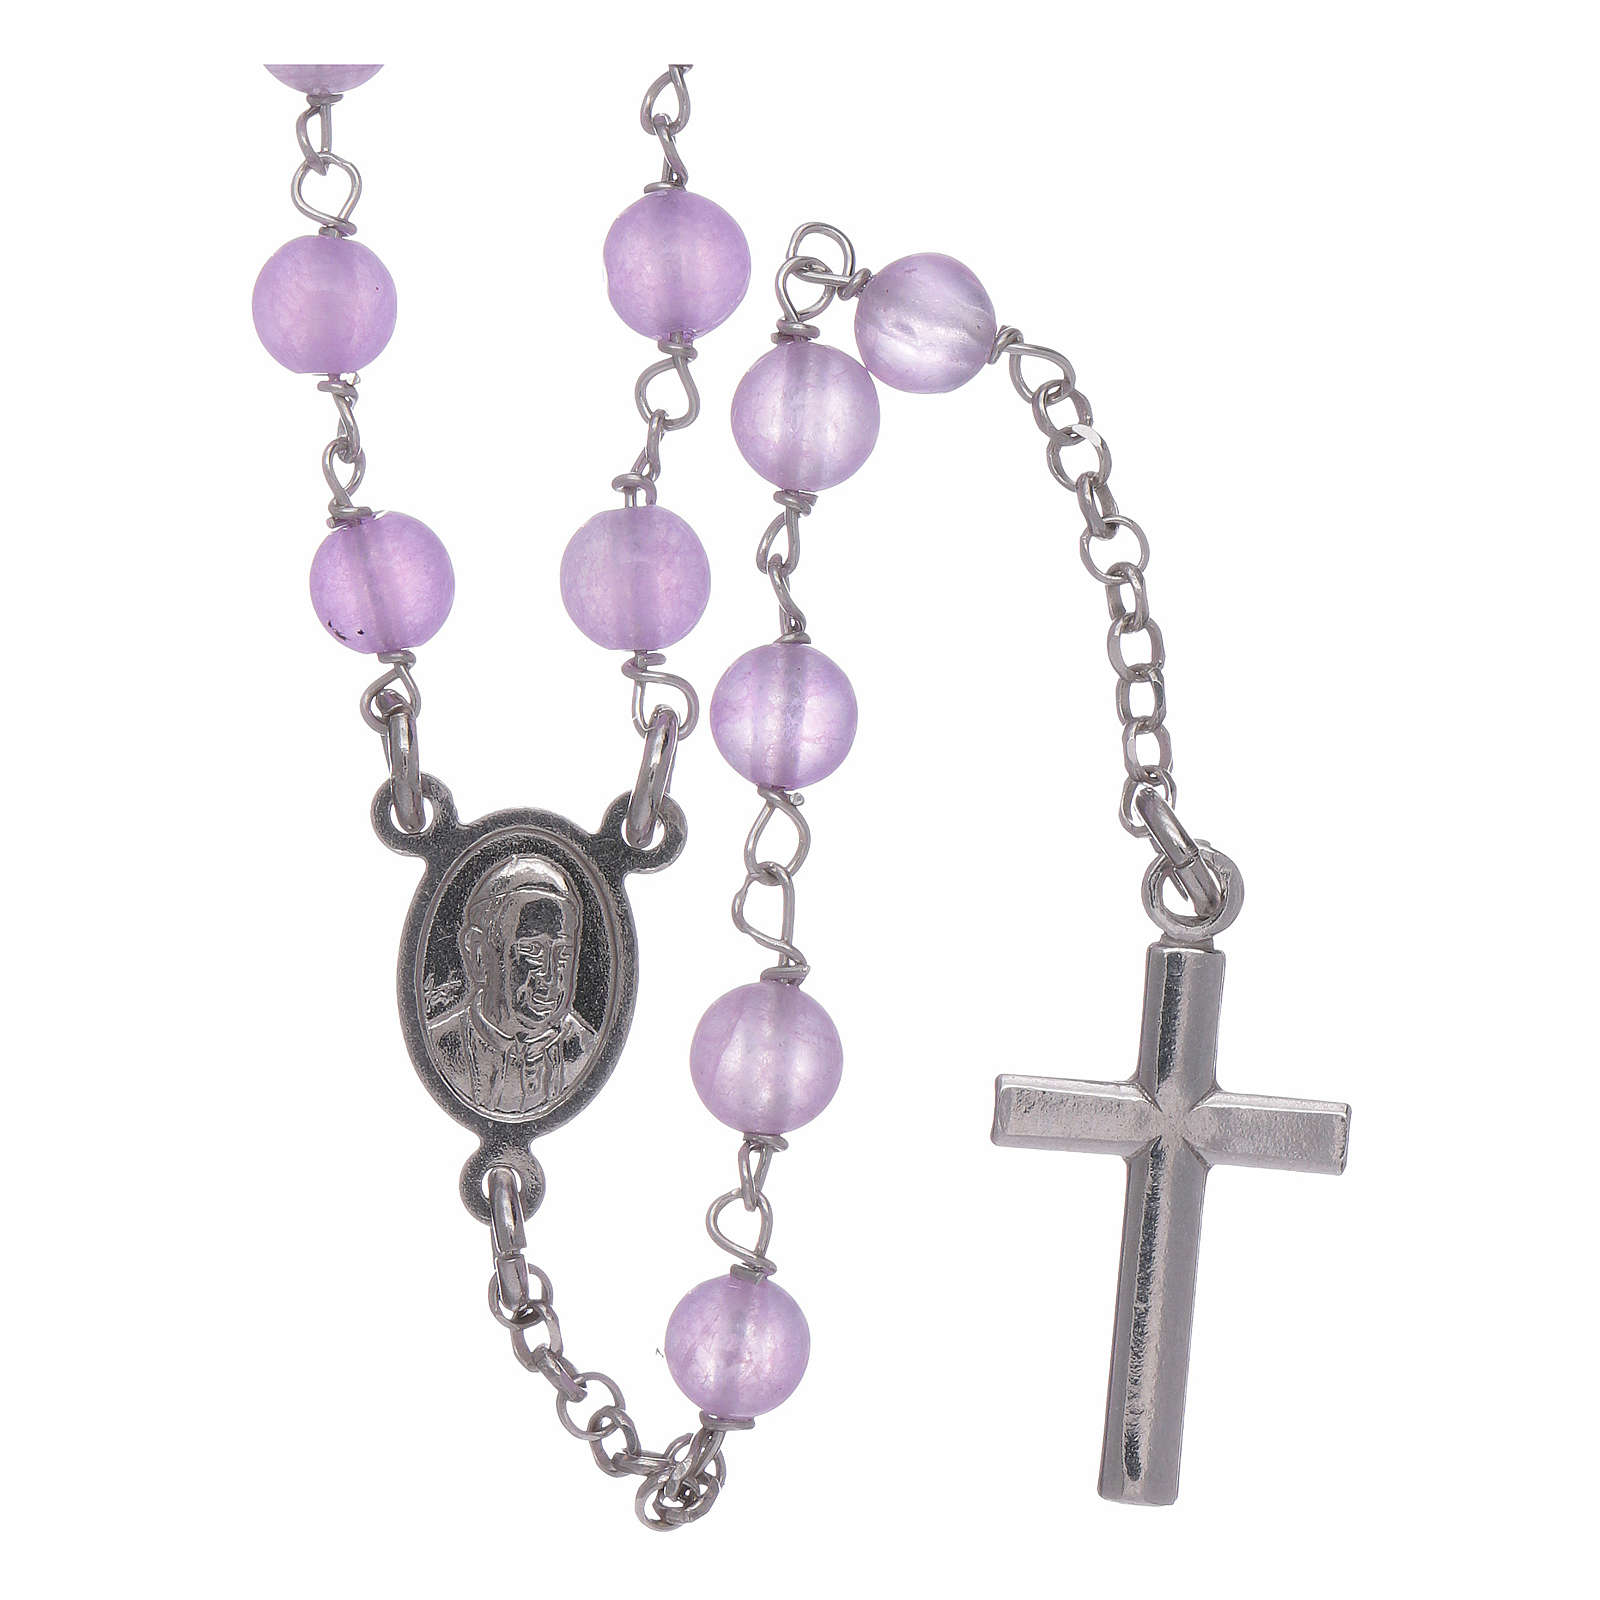 AMEN rosary classic model with lilac jade spheres in 925 sterling silver 4